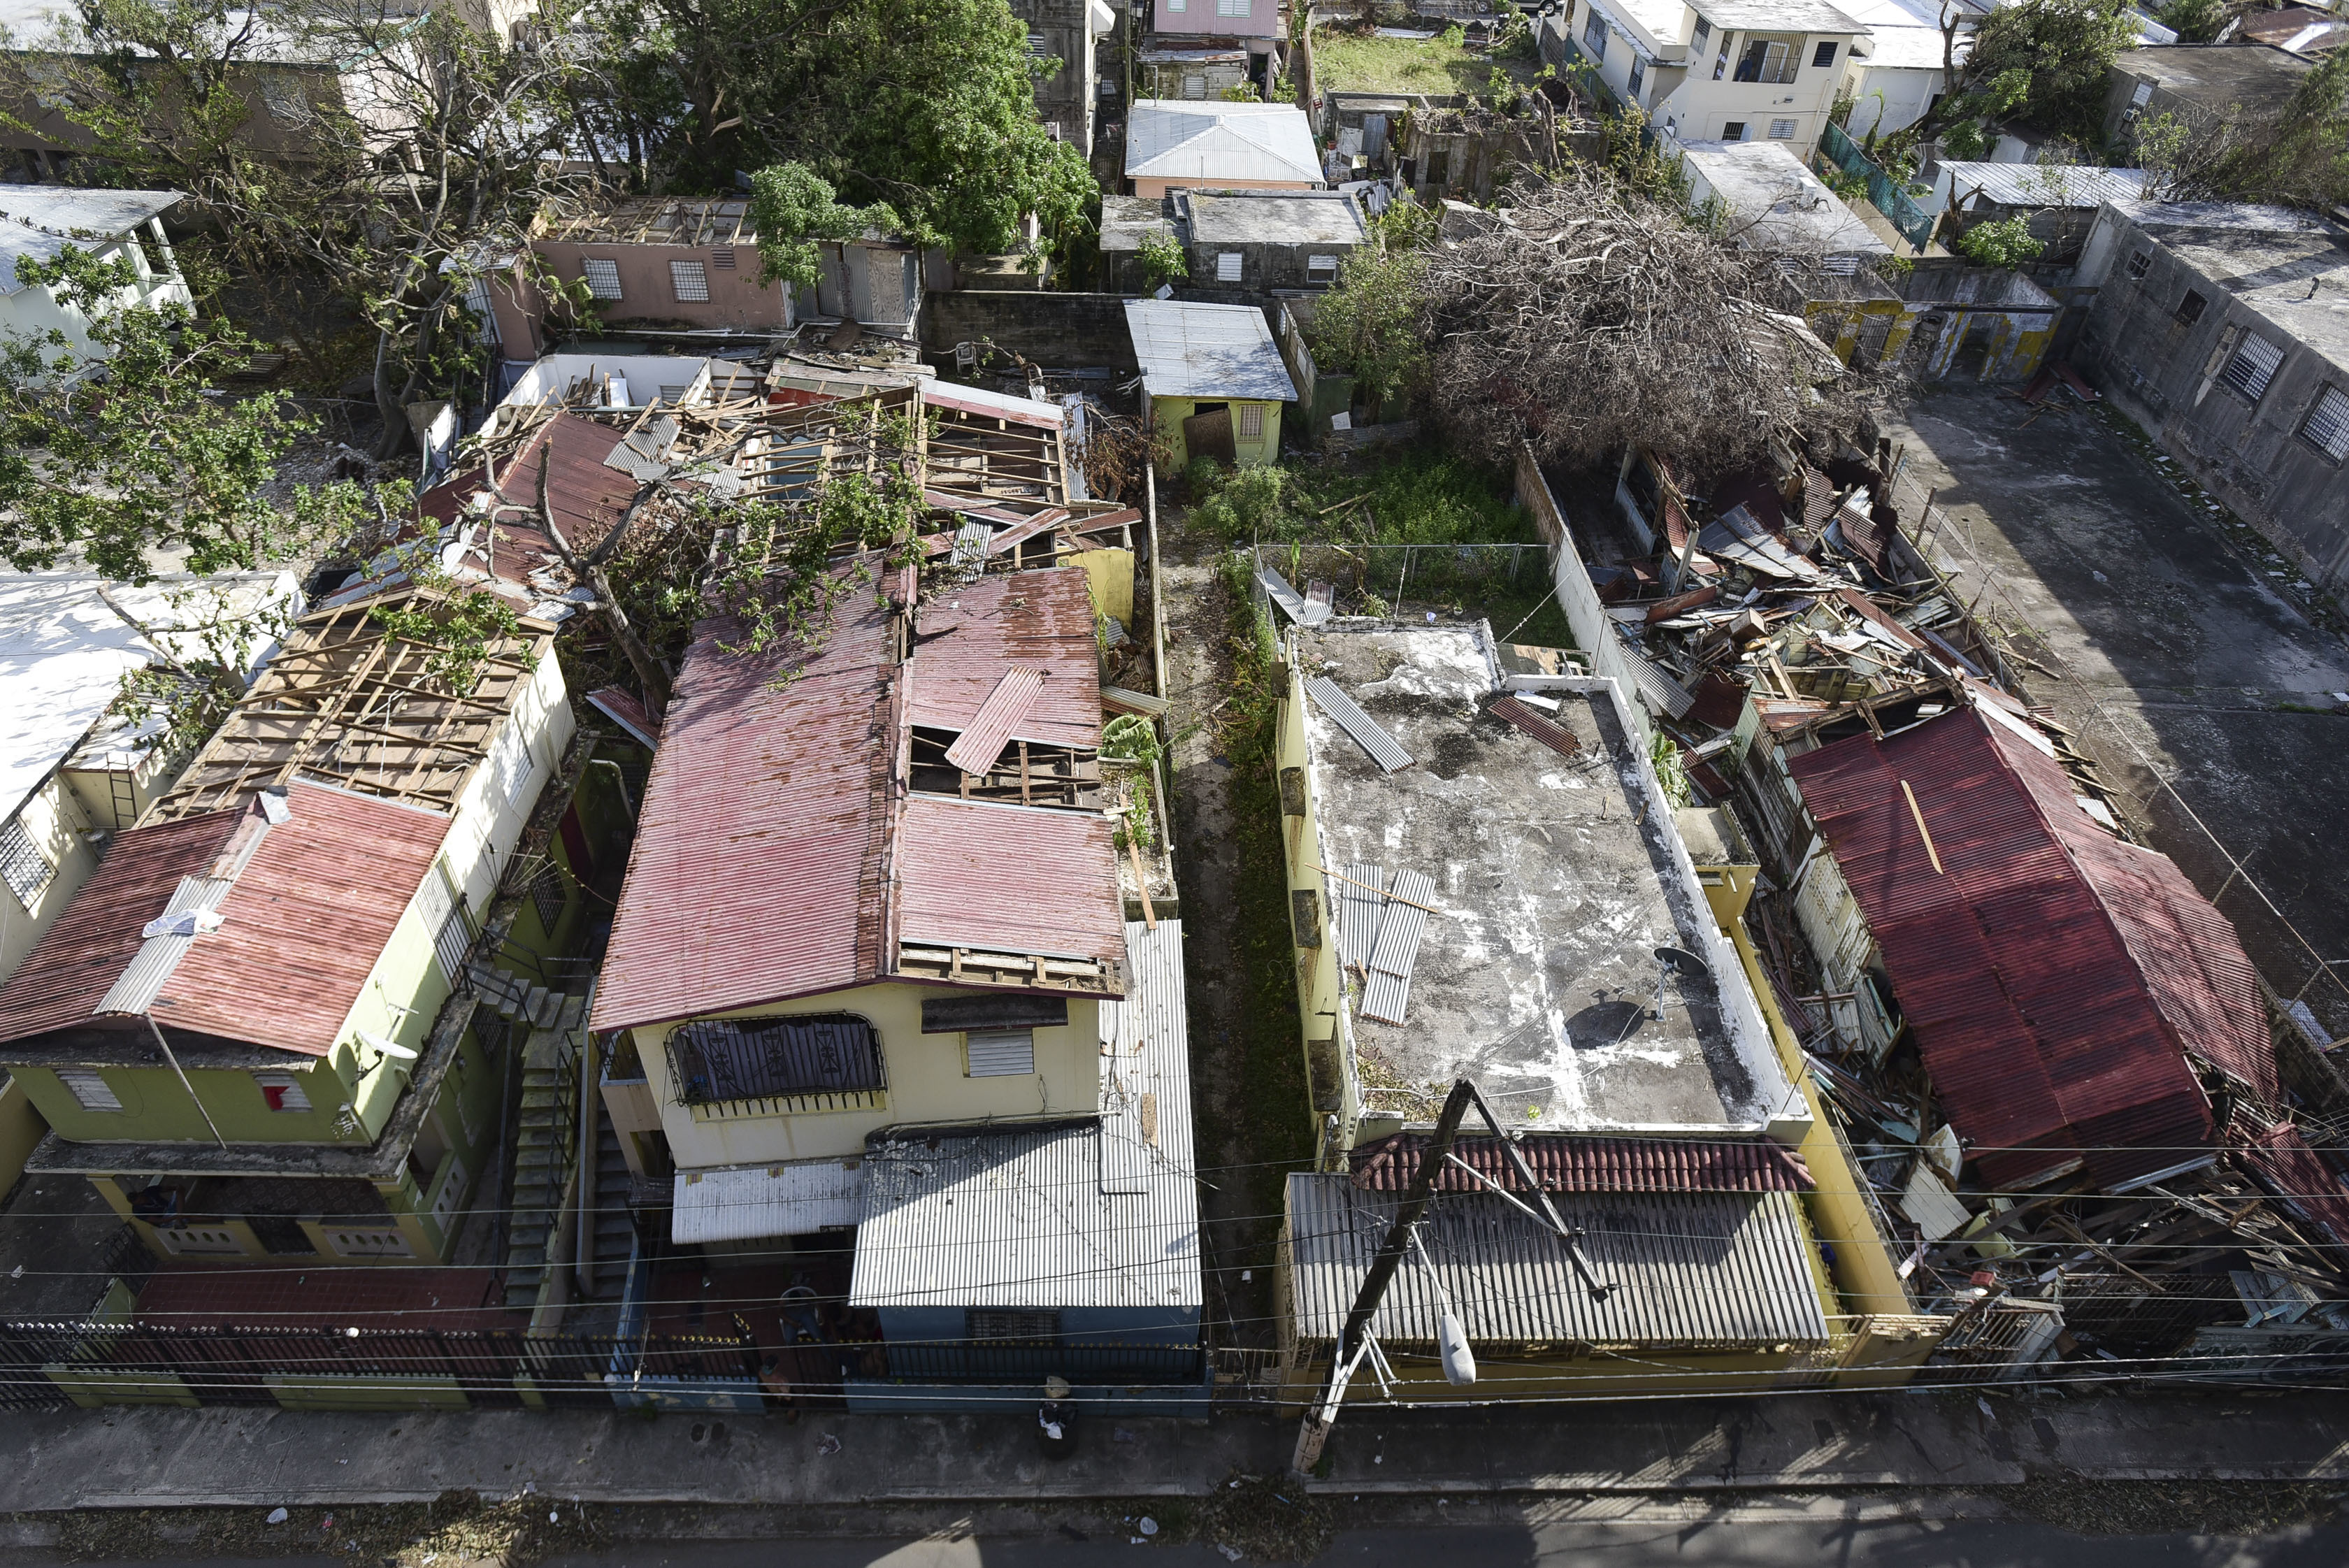 <div class='meta'><div class='origin-logo' data-origin='AP'></div><span class='caption-text' data-credit='AP Photo/Carlos Giusti'>Hurricane Maria hit Puerto Rico, leaving behind devastation and more than 1 million without power</span></div>